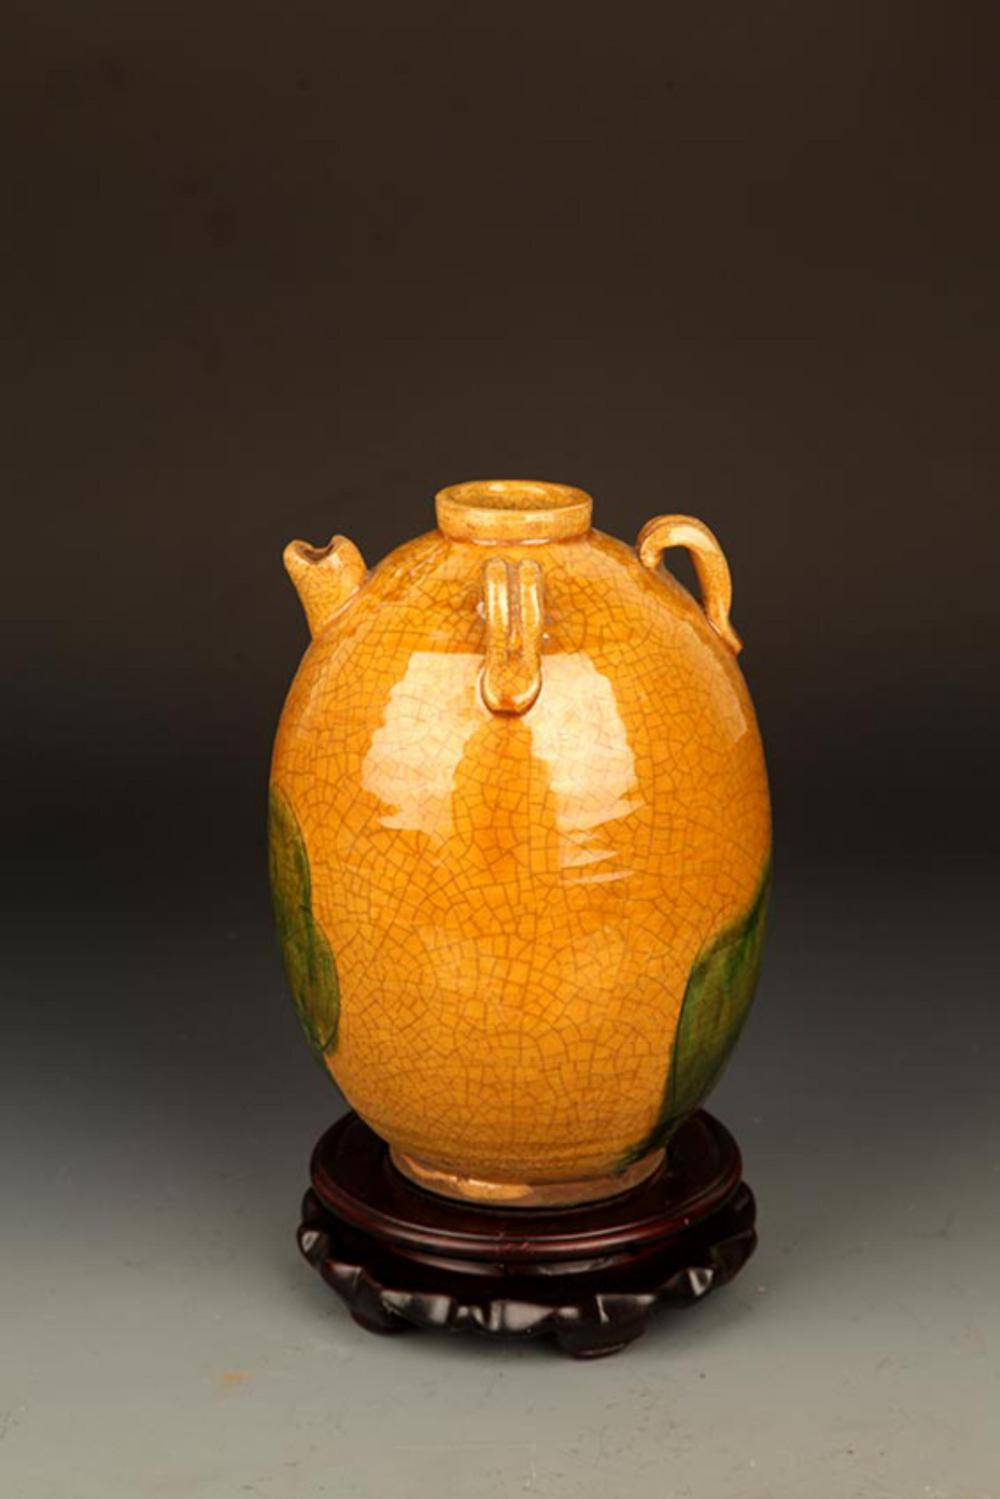 A YELLOW GLAZED ROUND PORCELAIN JAR